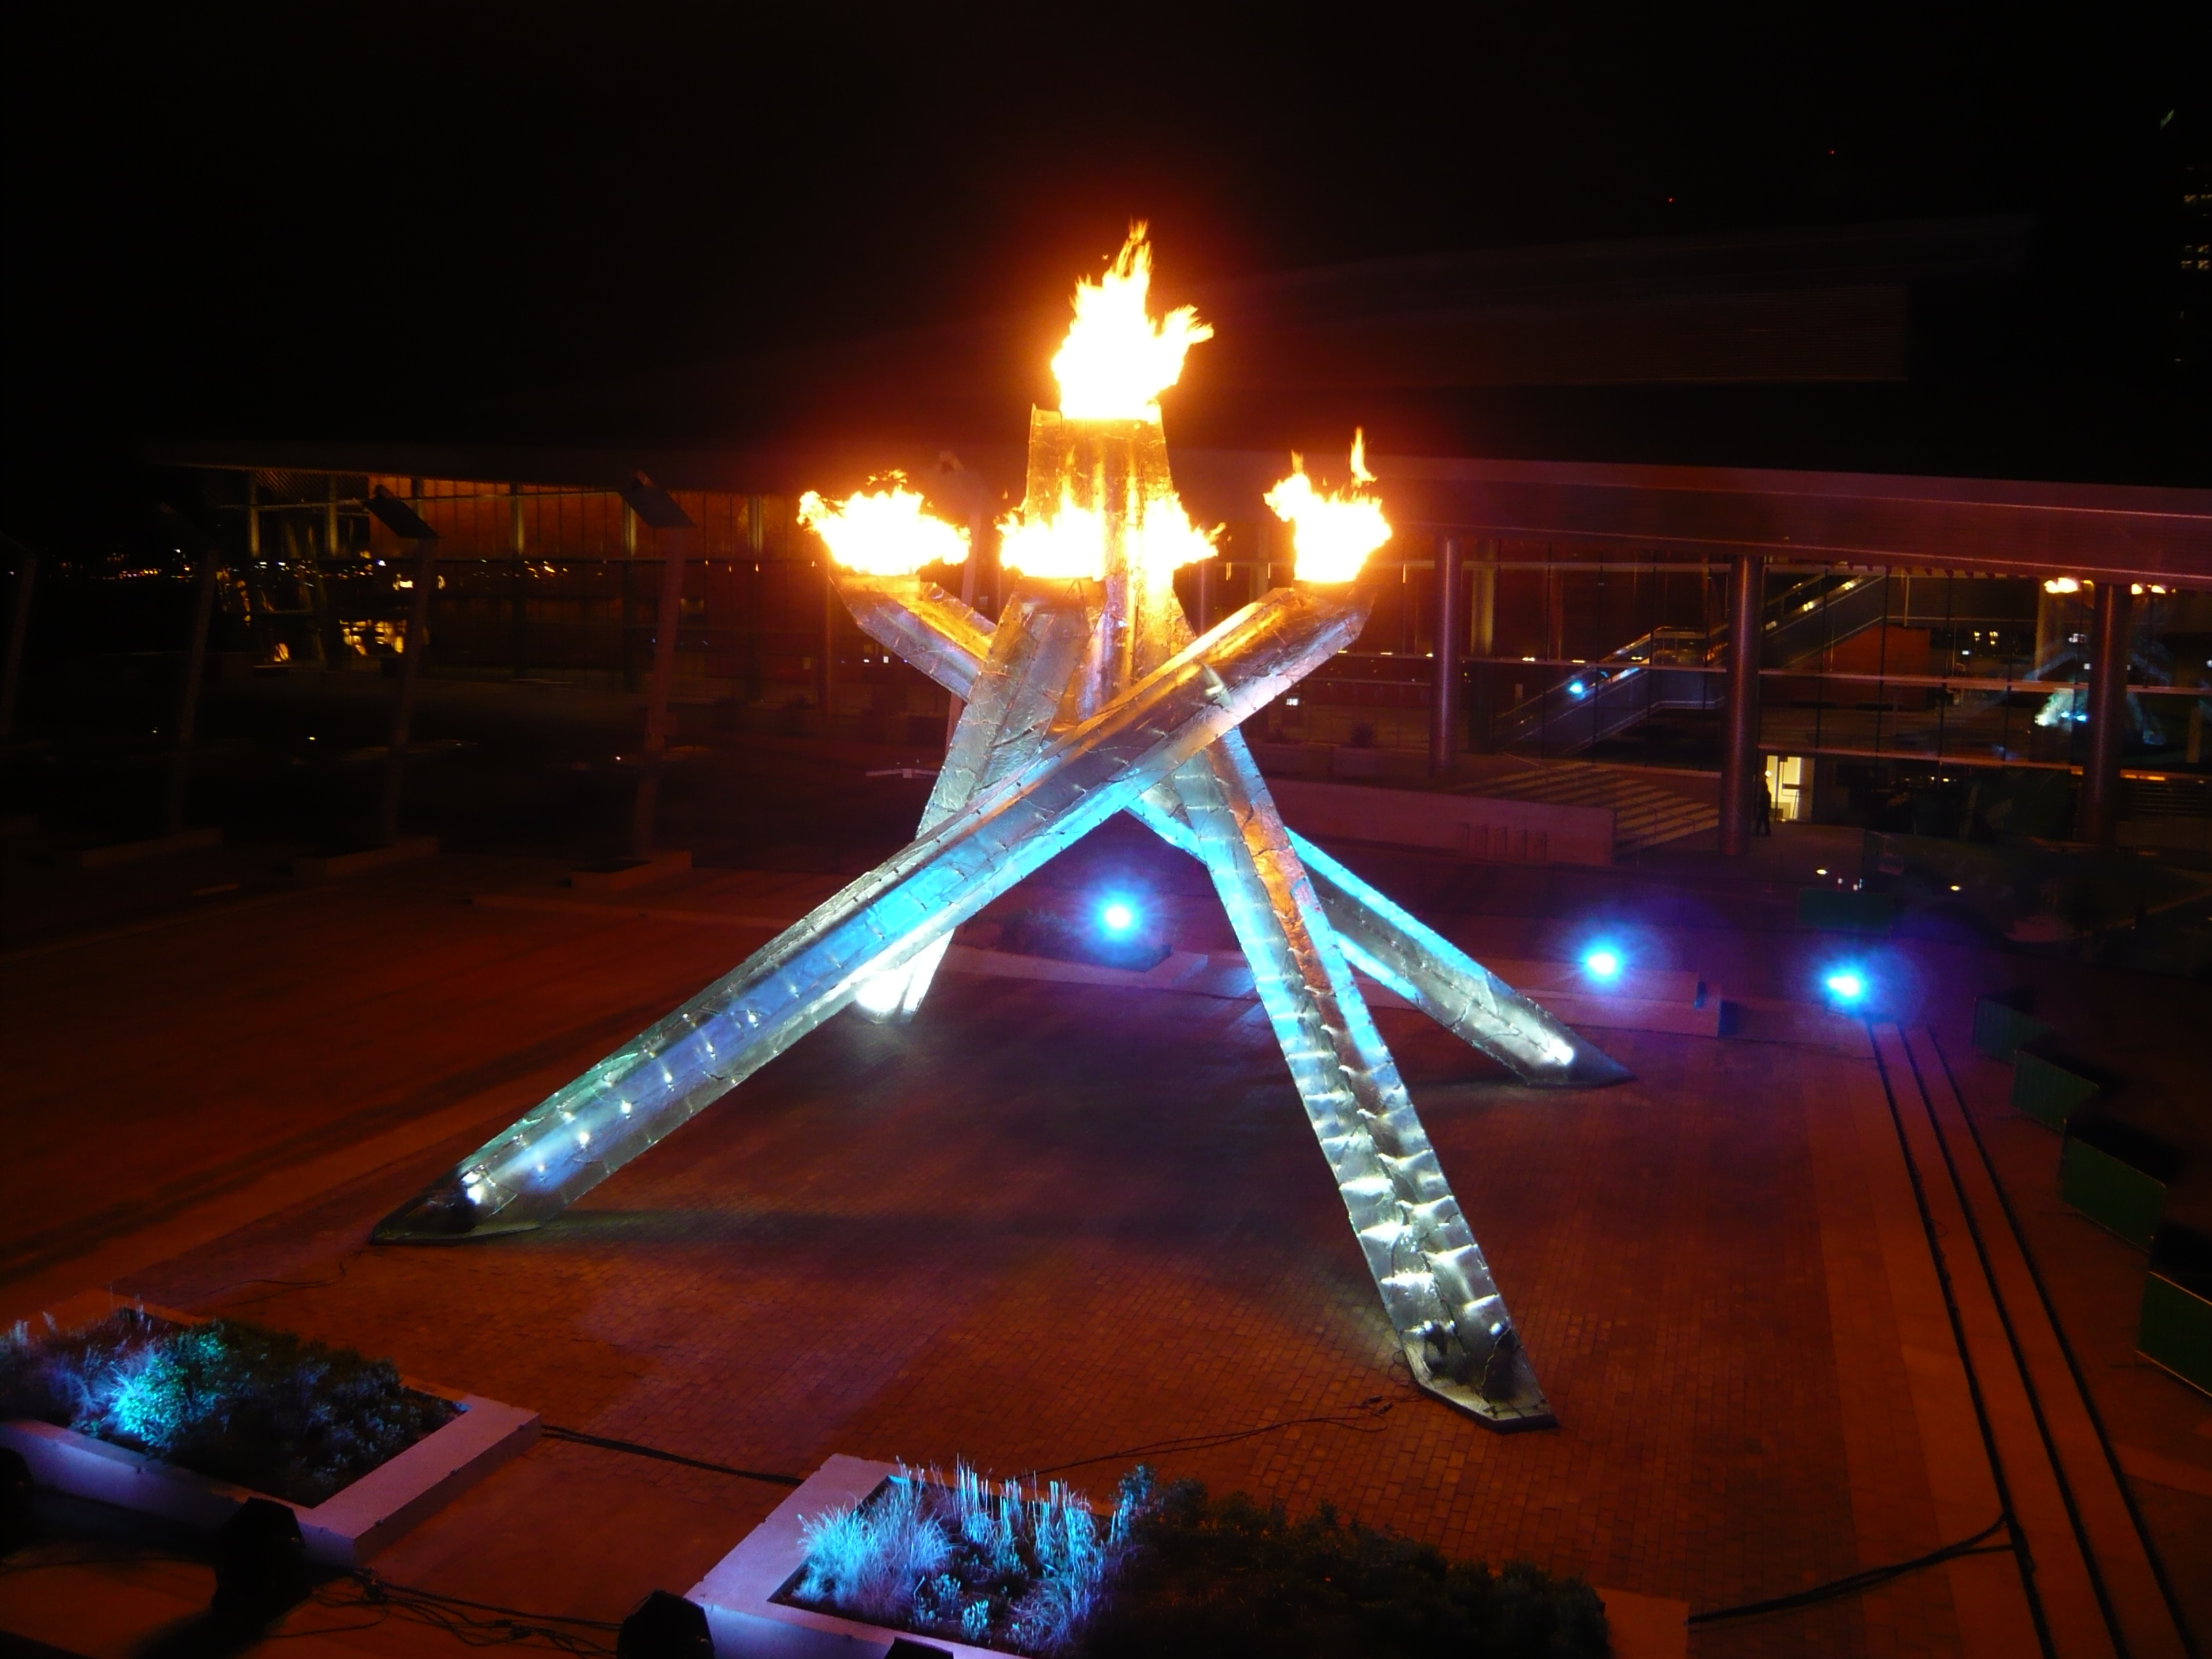 fileolympic flame of vancouver 2010 olympics nightjpg